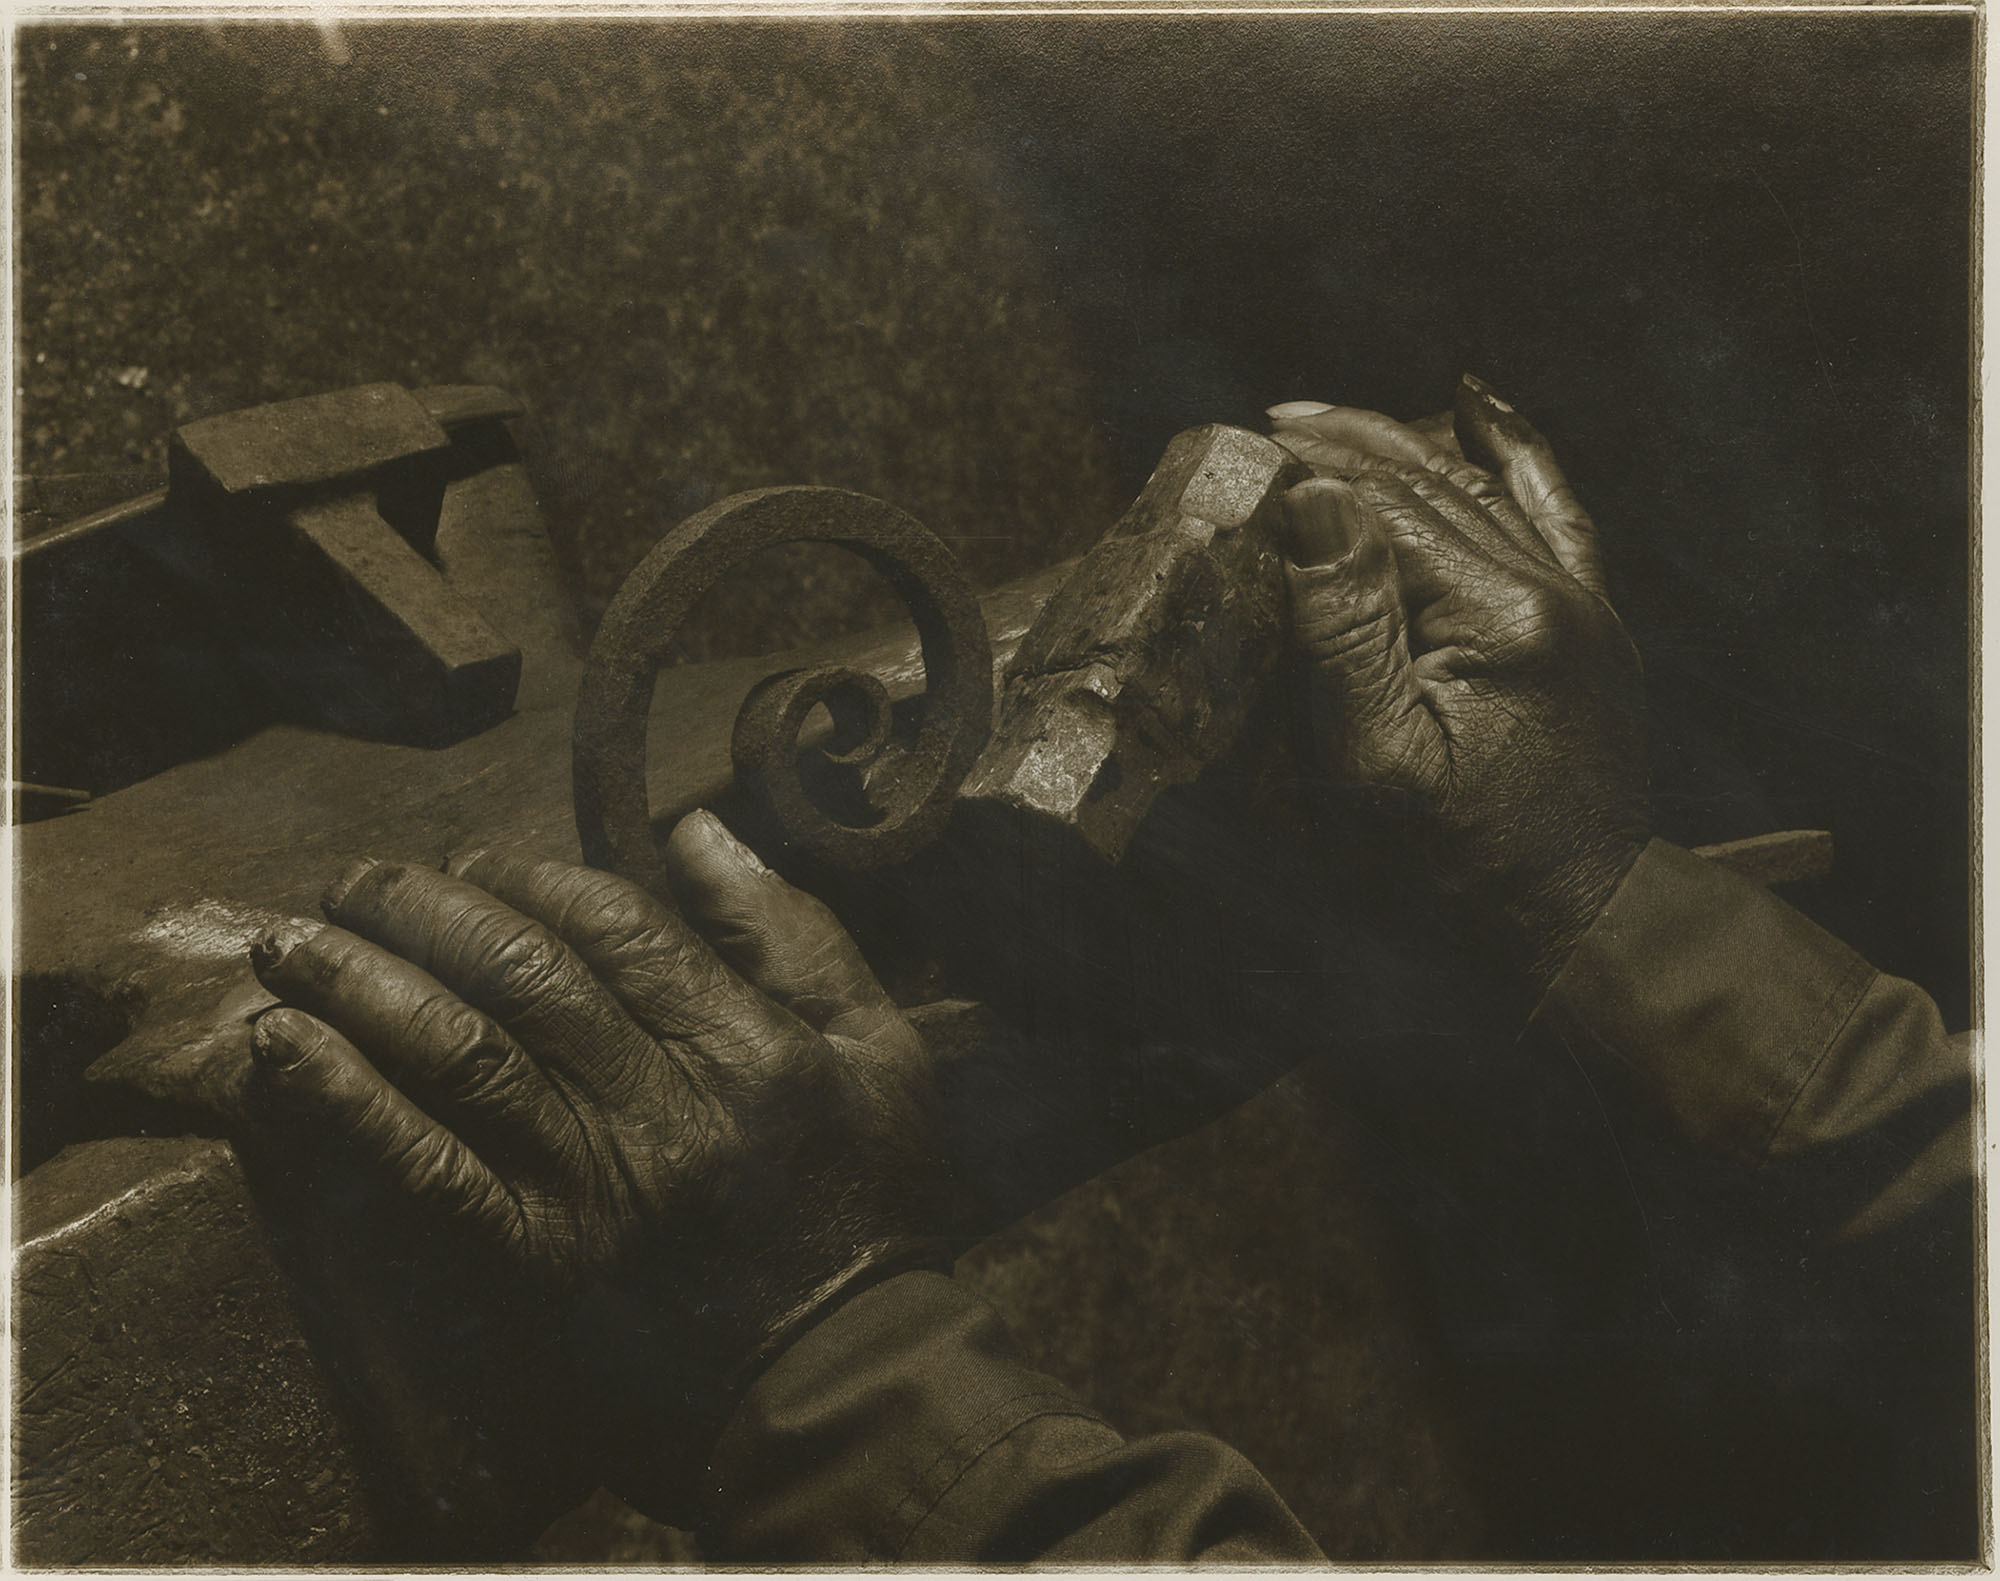 Photograph of Philip Simmons hands holding hammer and scrolled piece of iron.